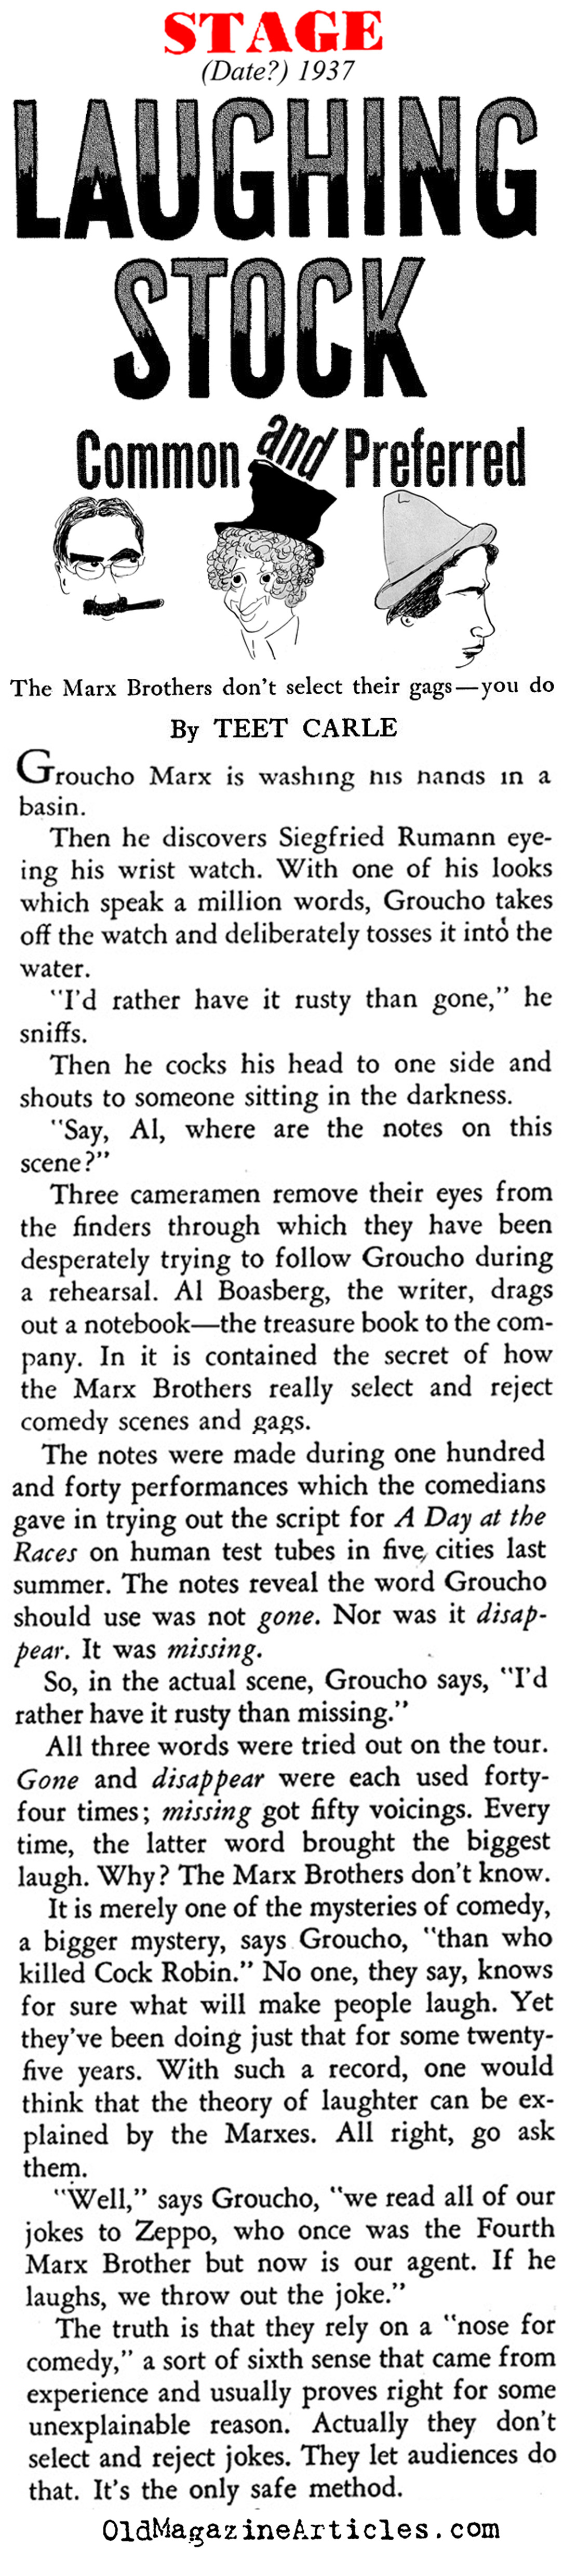 The Marx Brothers & the Joke Development Process (Stage Magazine, 1937)